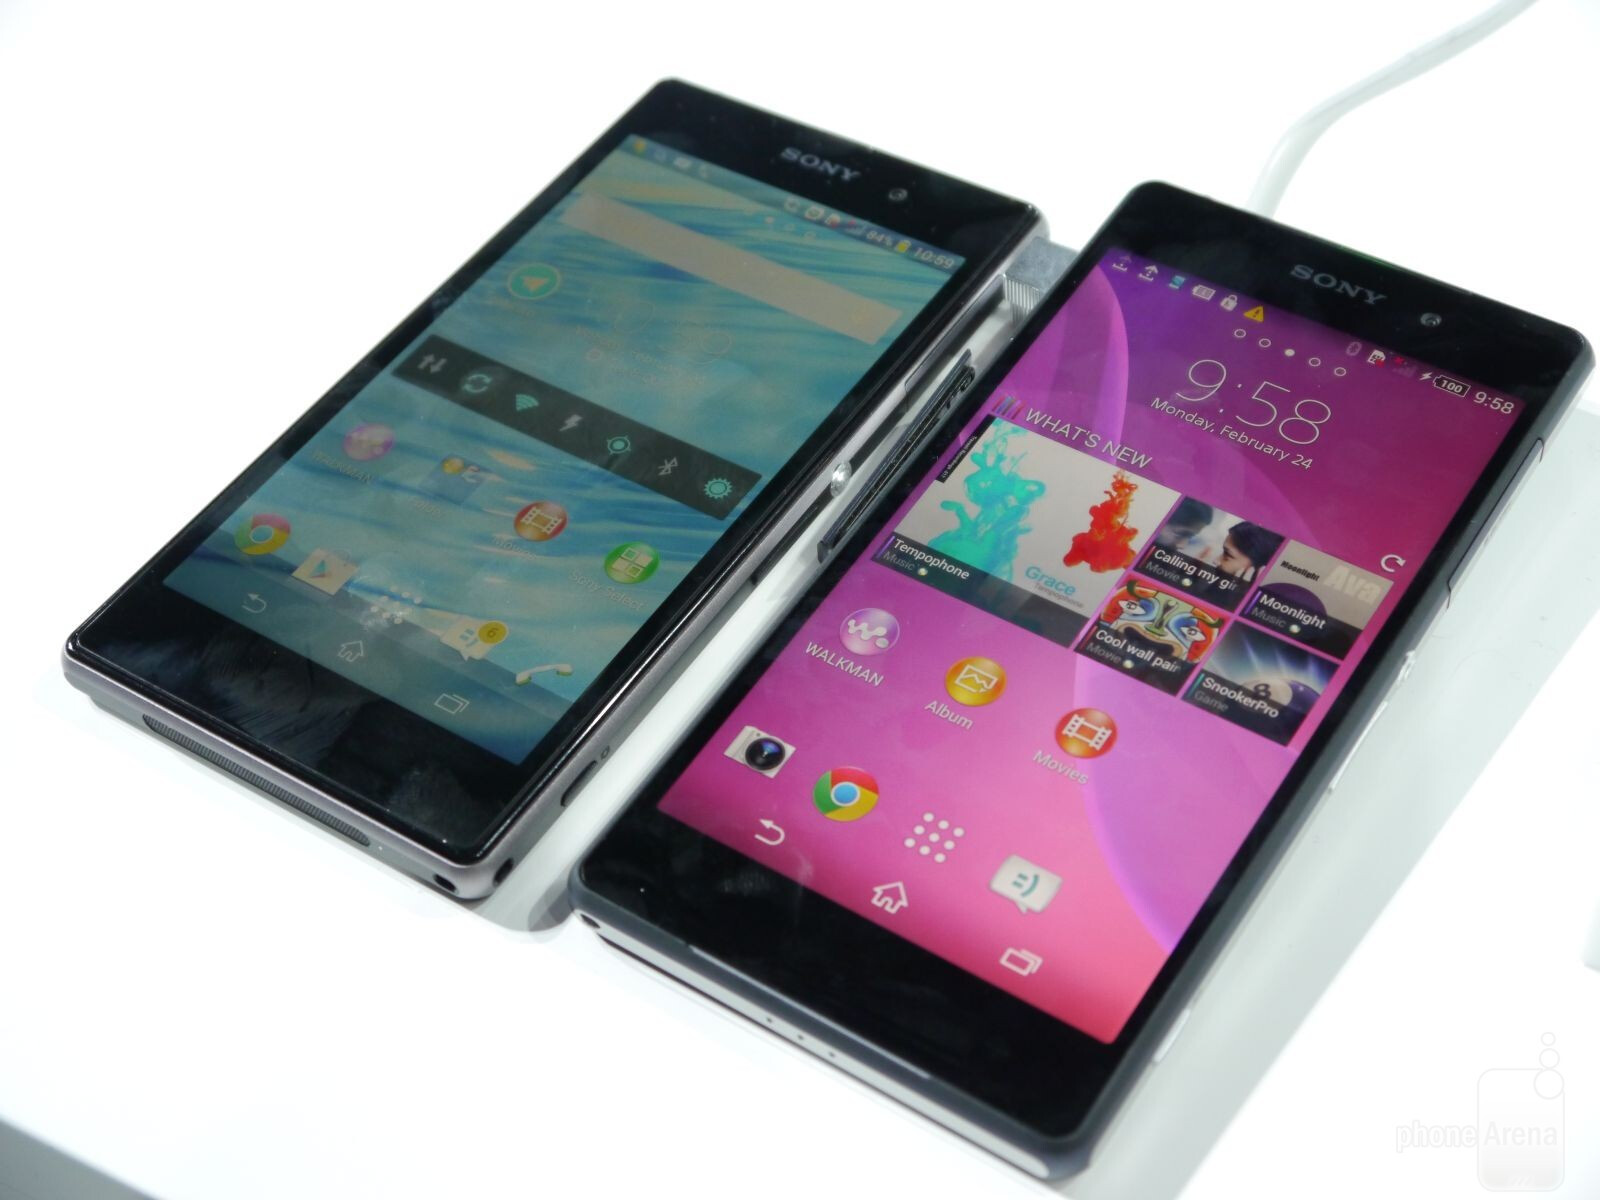 First Look at the Sony Xperia Tablet Z